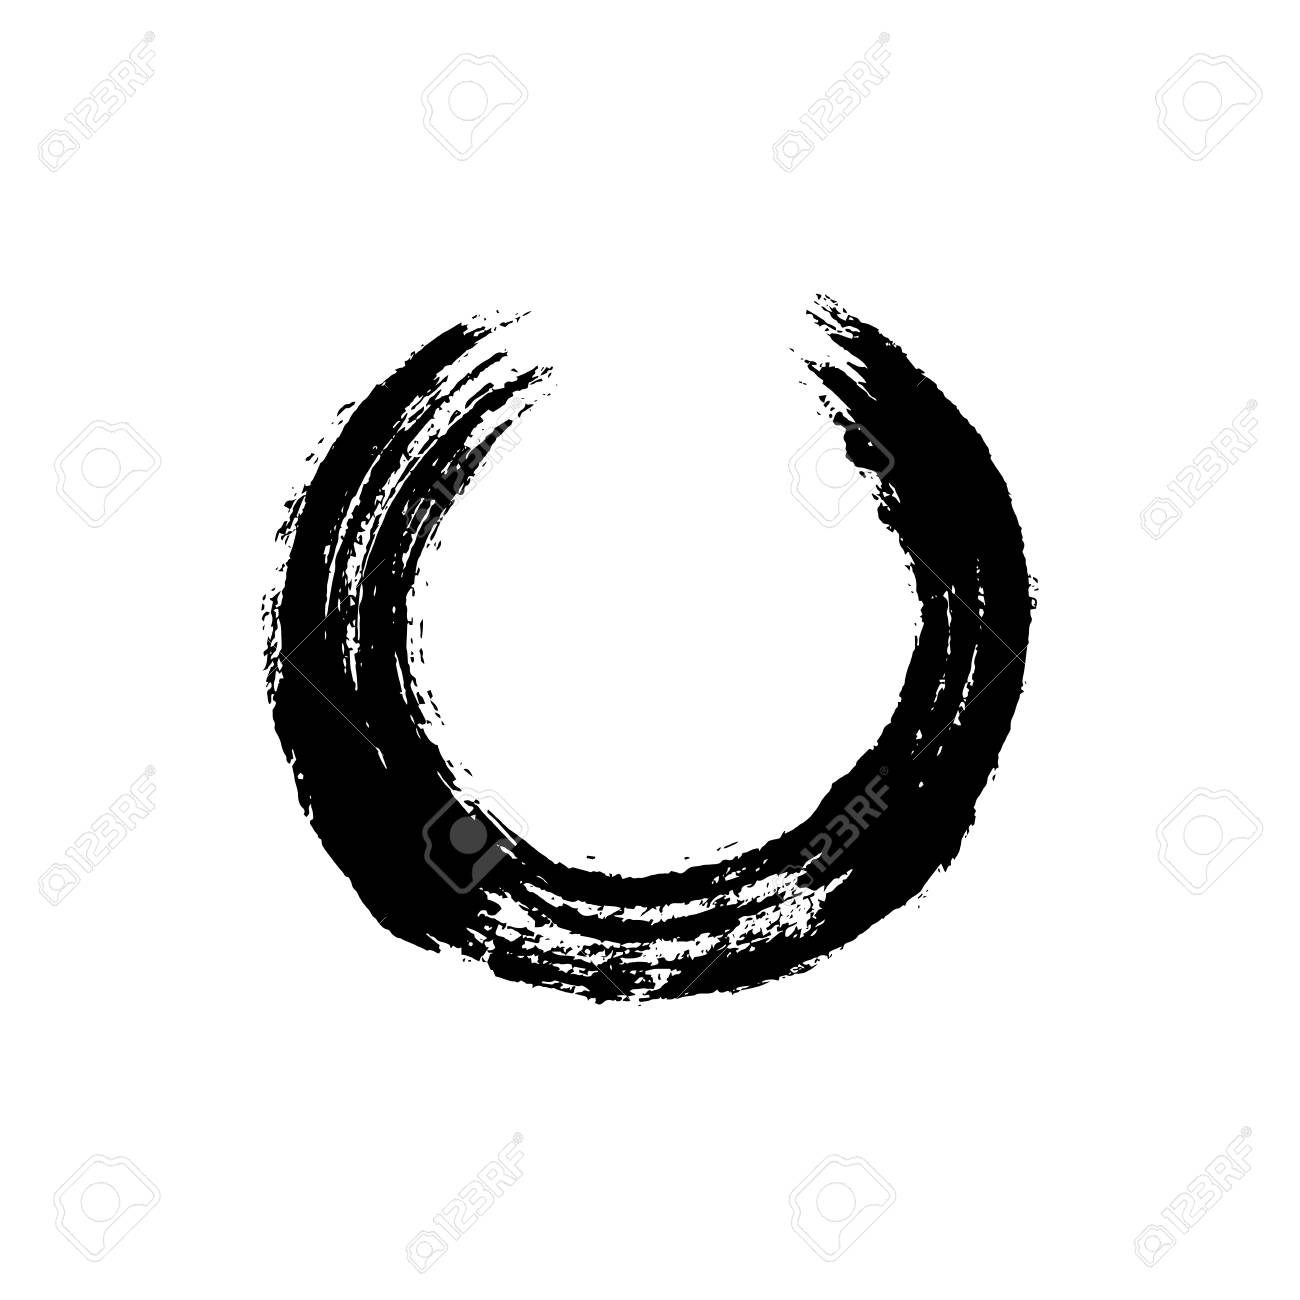 Enso open circle buddhist symbol for the never ending journey buddhist symbol for the never ending journey to be whole handmade biocorpaavc Gallery